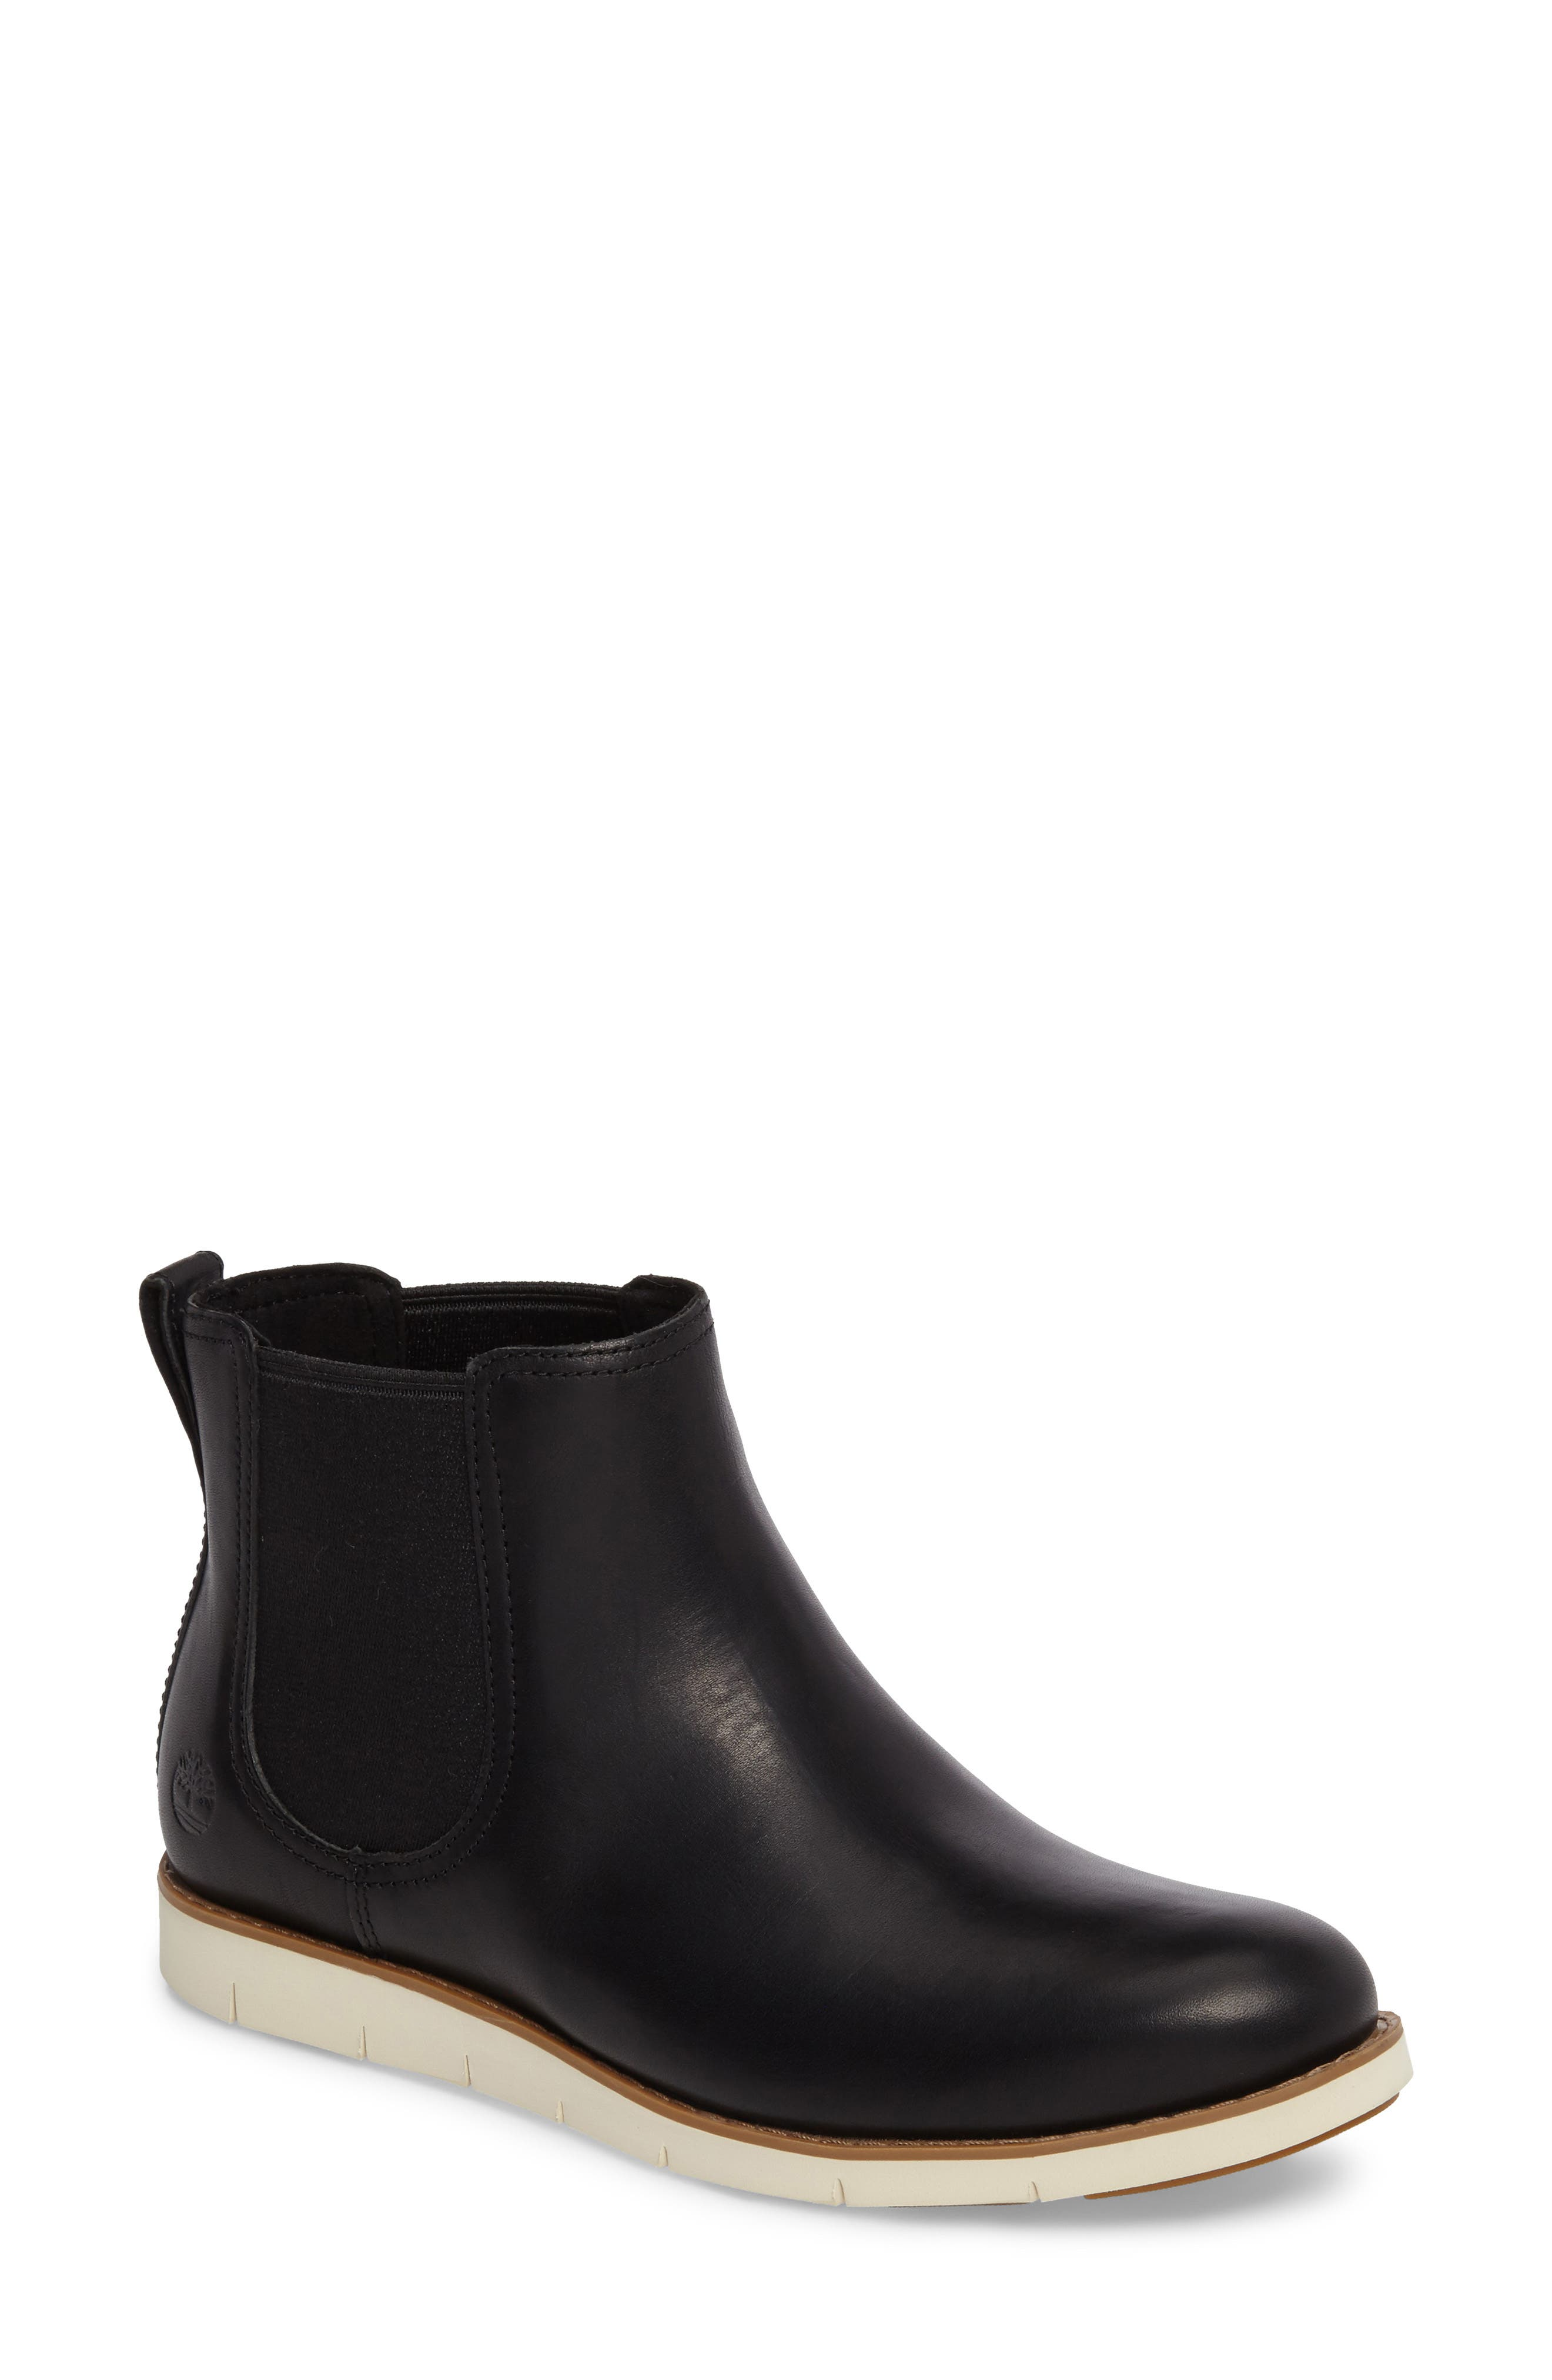 Alternate Image 1 Selected - Timberland Lakeville Chelsea Boot (Women)